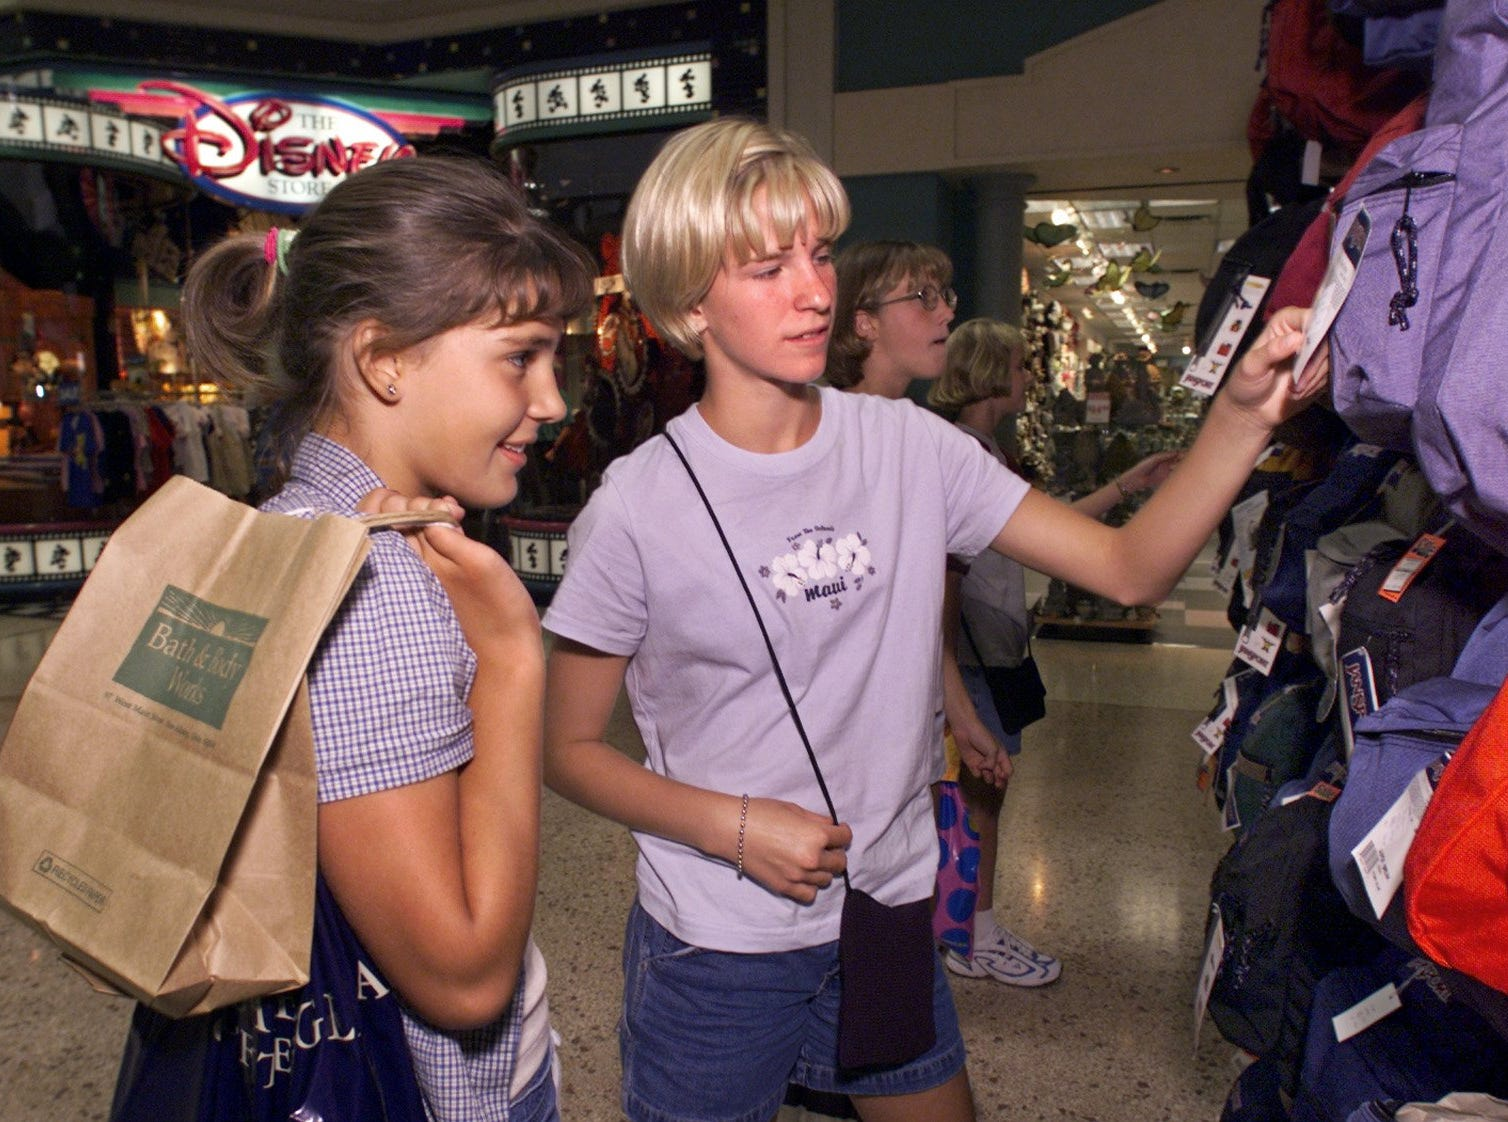 Ashley Brown, left, and Andrea Kinnetz, right, both age 12 from Emmetsburg, look at backpacks while shopping at Valley West Mall. They were down for the day with other friends shopping for school. Photo taken on Aug. 13, 1999.